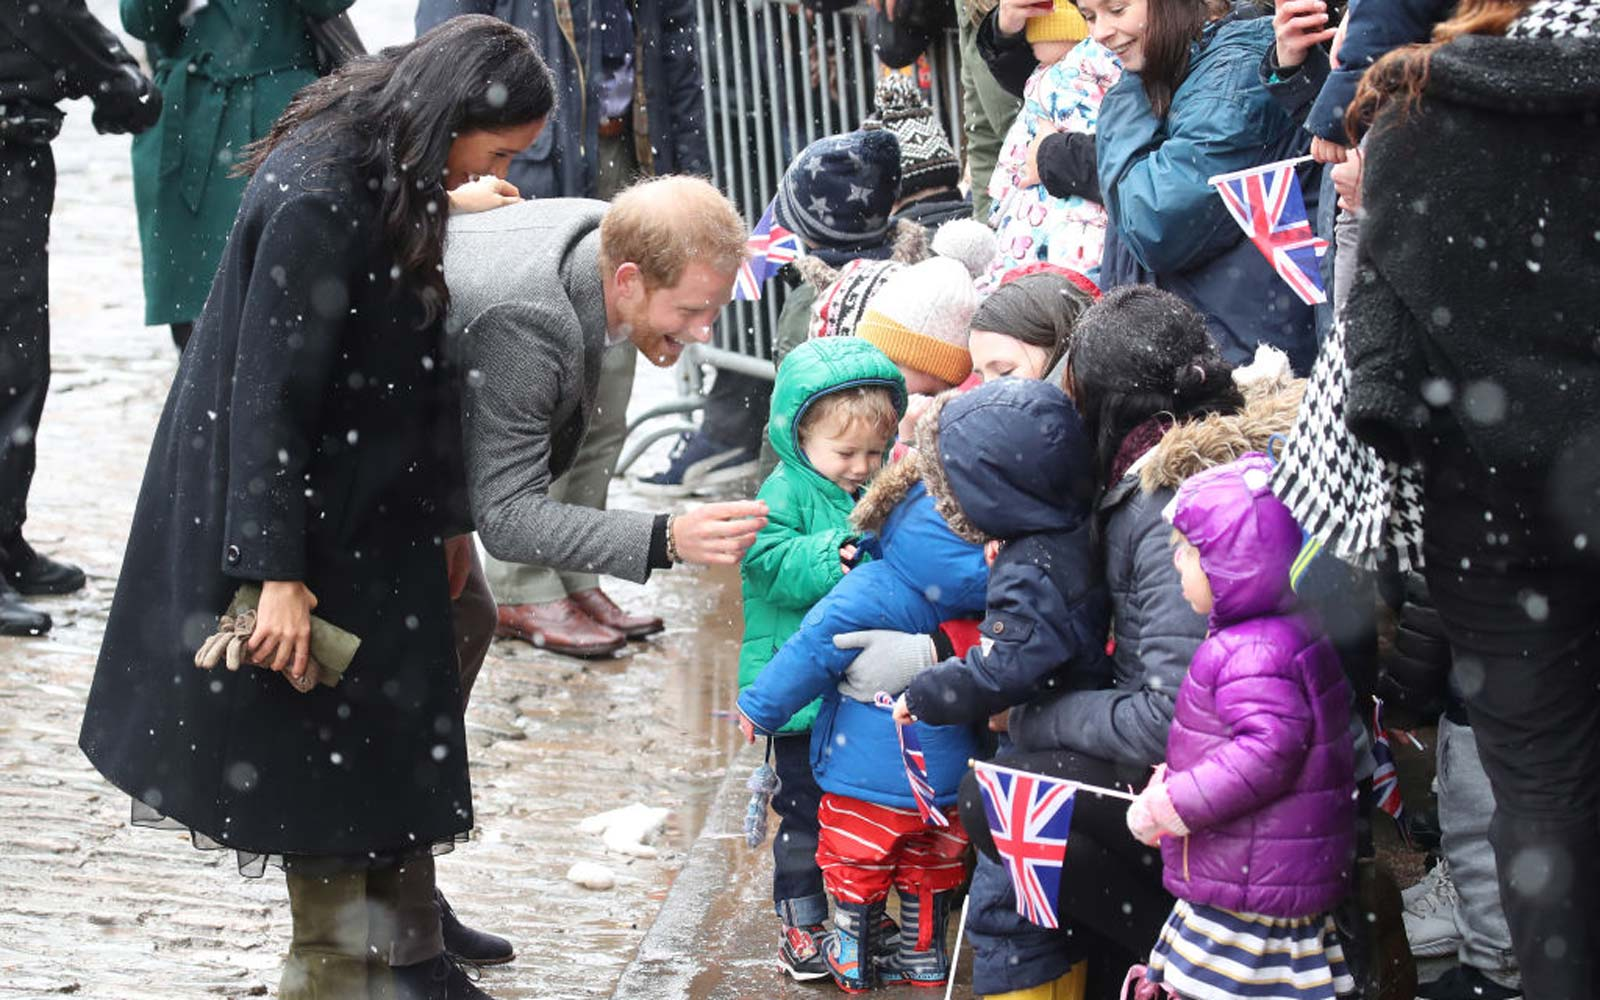 Meghan, Duchess of Sussex and Prince Harry, Duke of Sussex meet children in the crowd as they arrive at the Bristol Old Vic